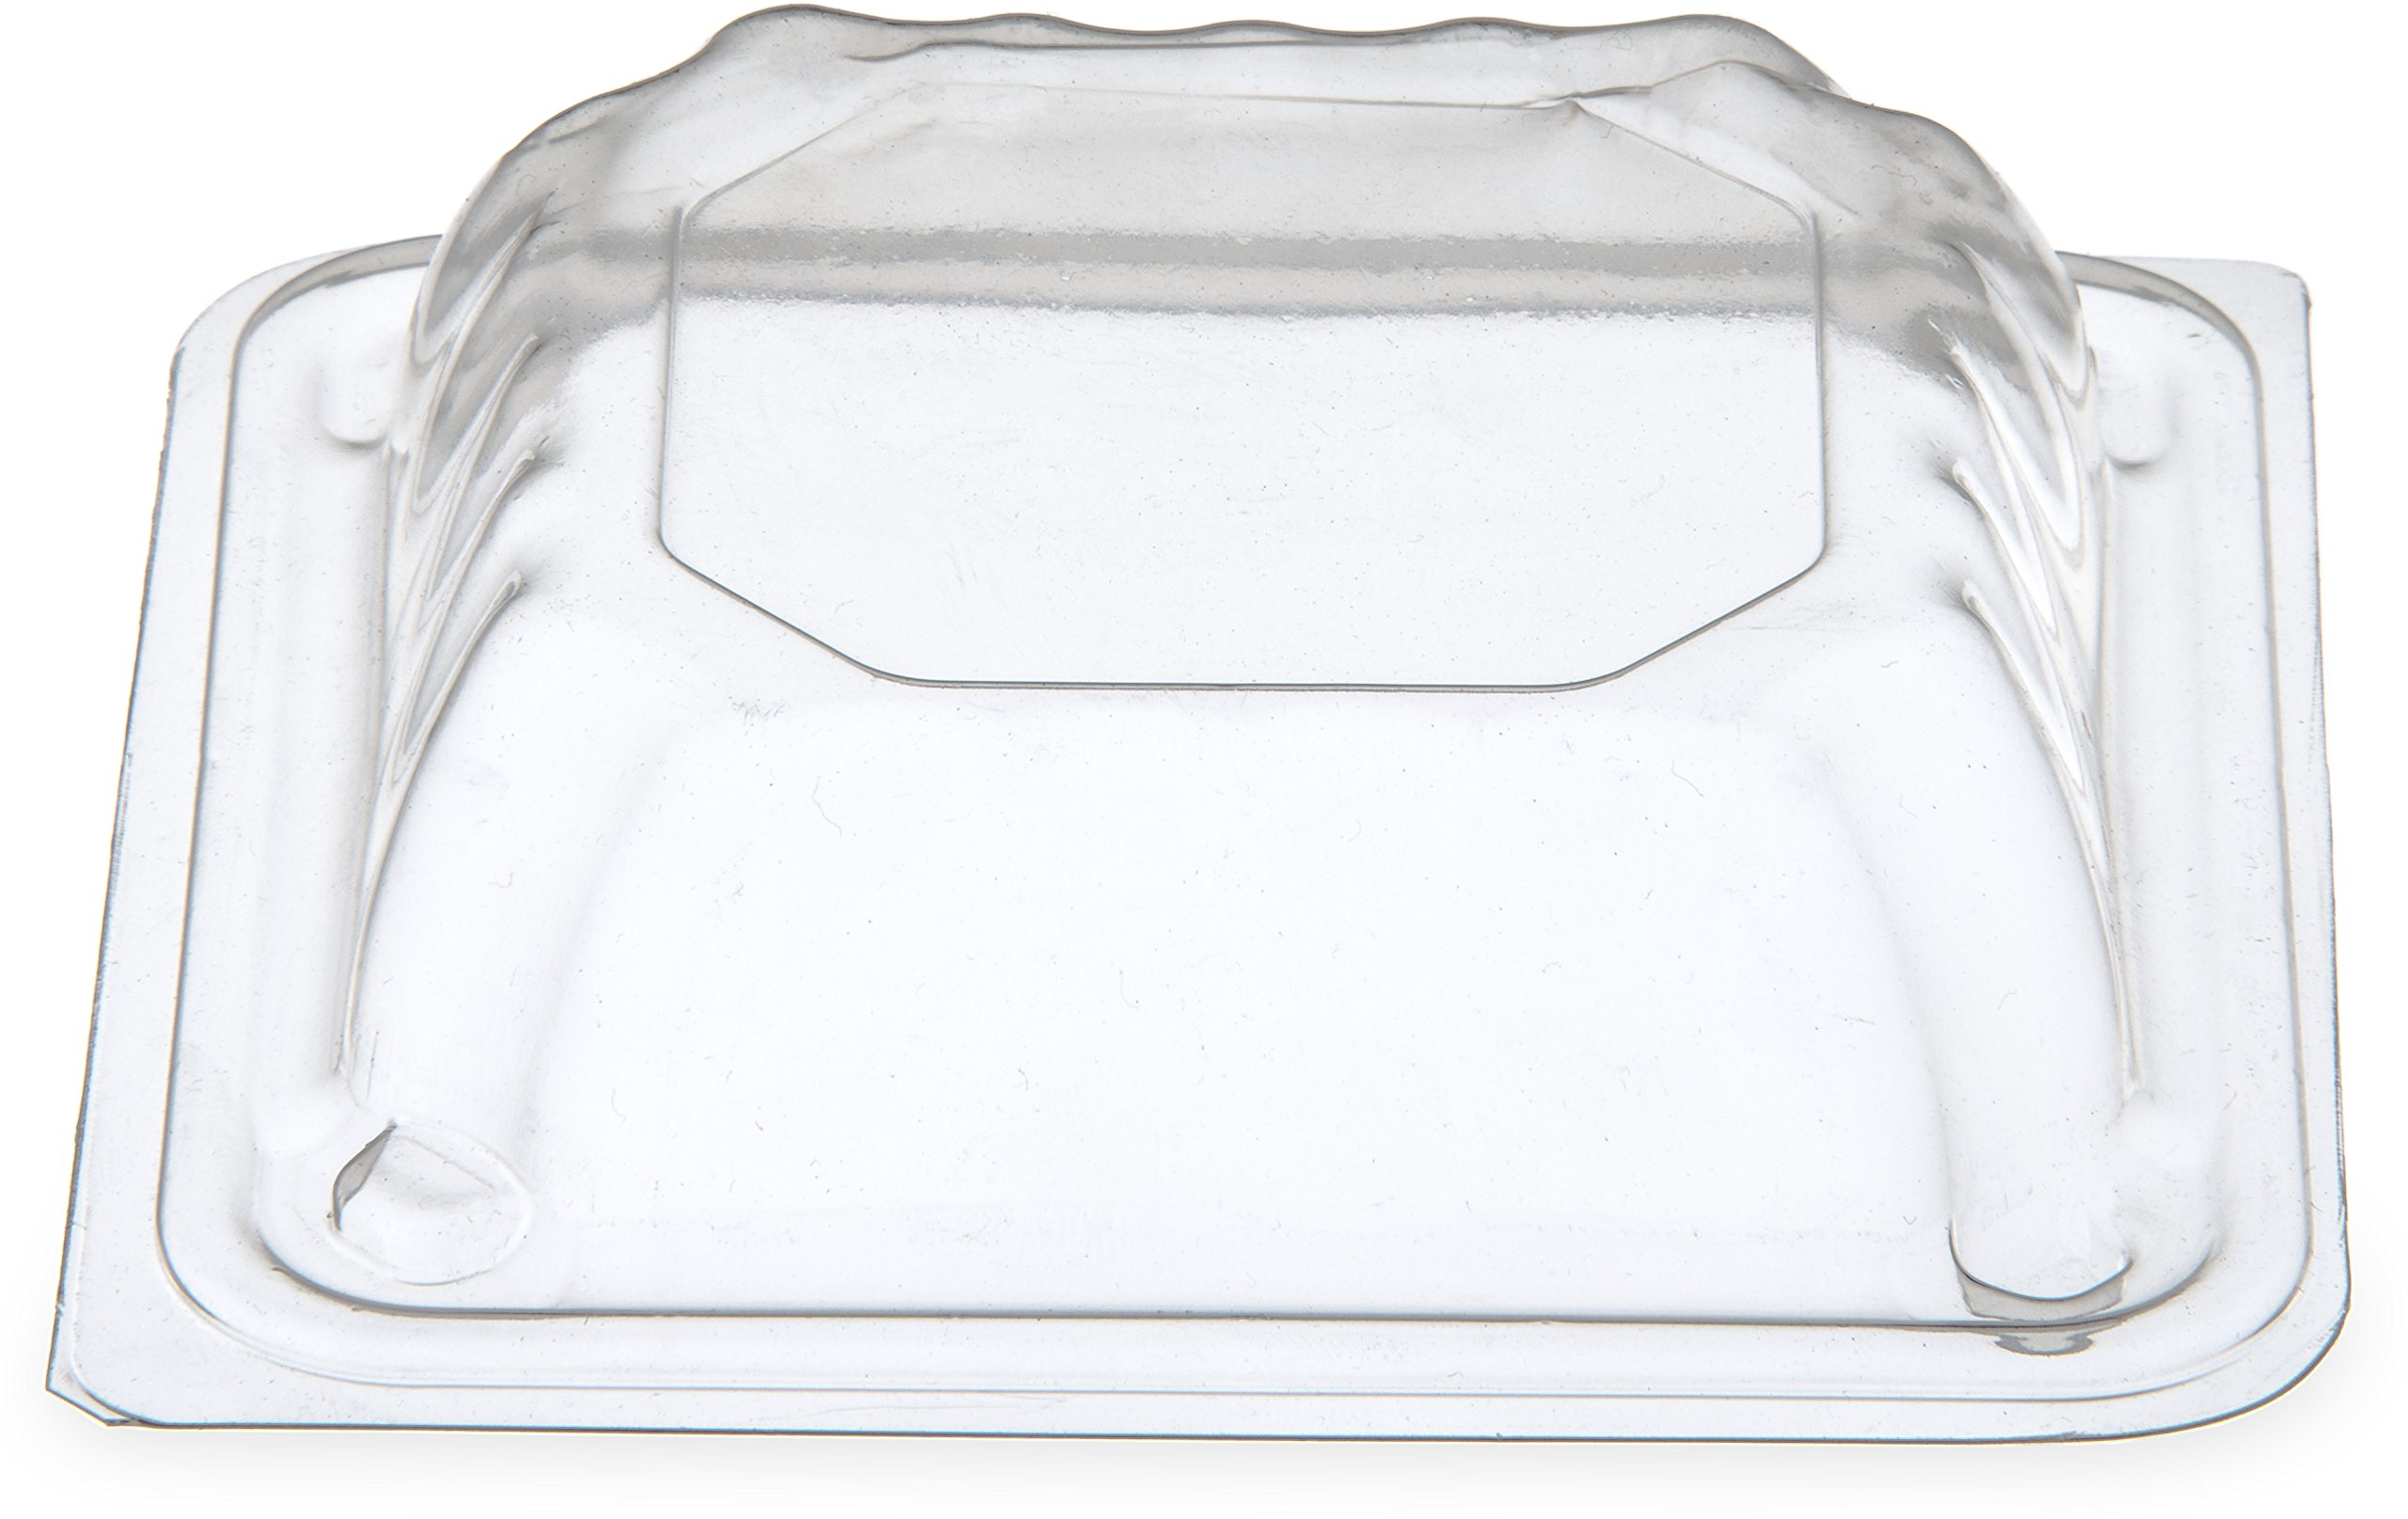 Dinex DX11840174 Disposable Square Dome Lid for DXSB1207, DXSB607 and DXSB907, 4'' Height, 4'' Width, 4'' Length, Polystyrene, Clear (Pack of 1000)